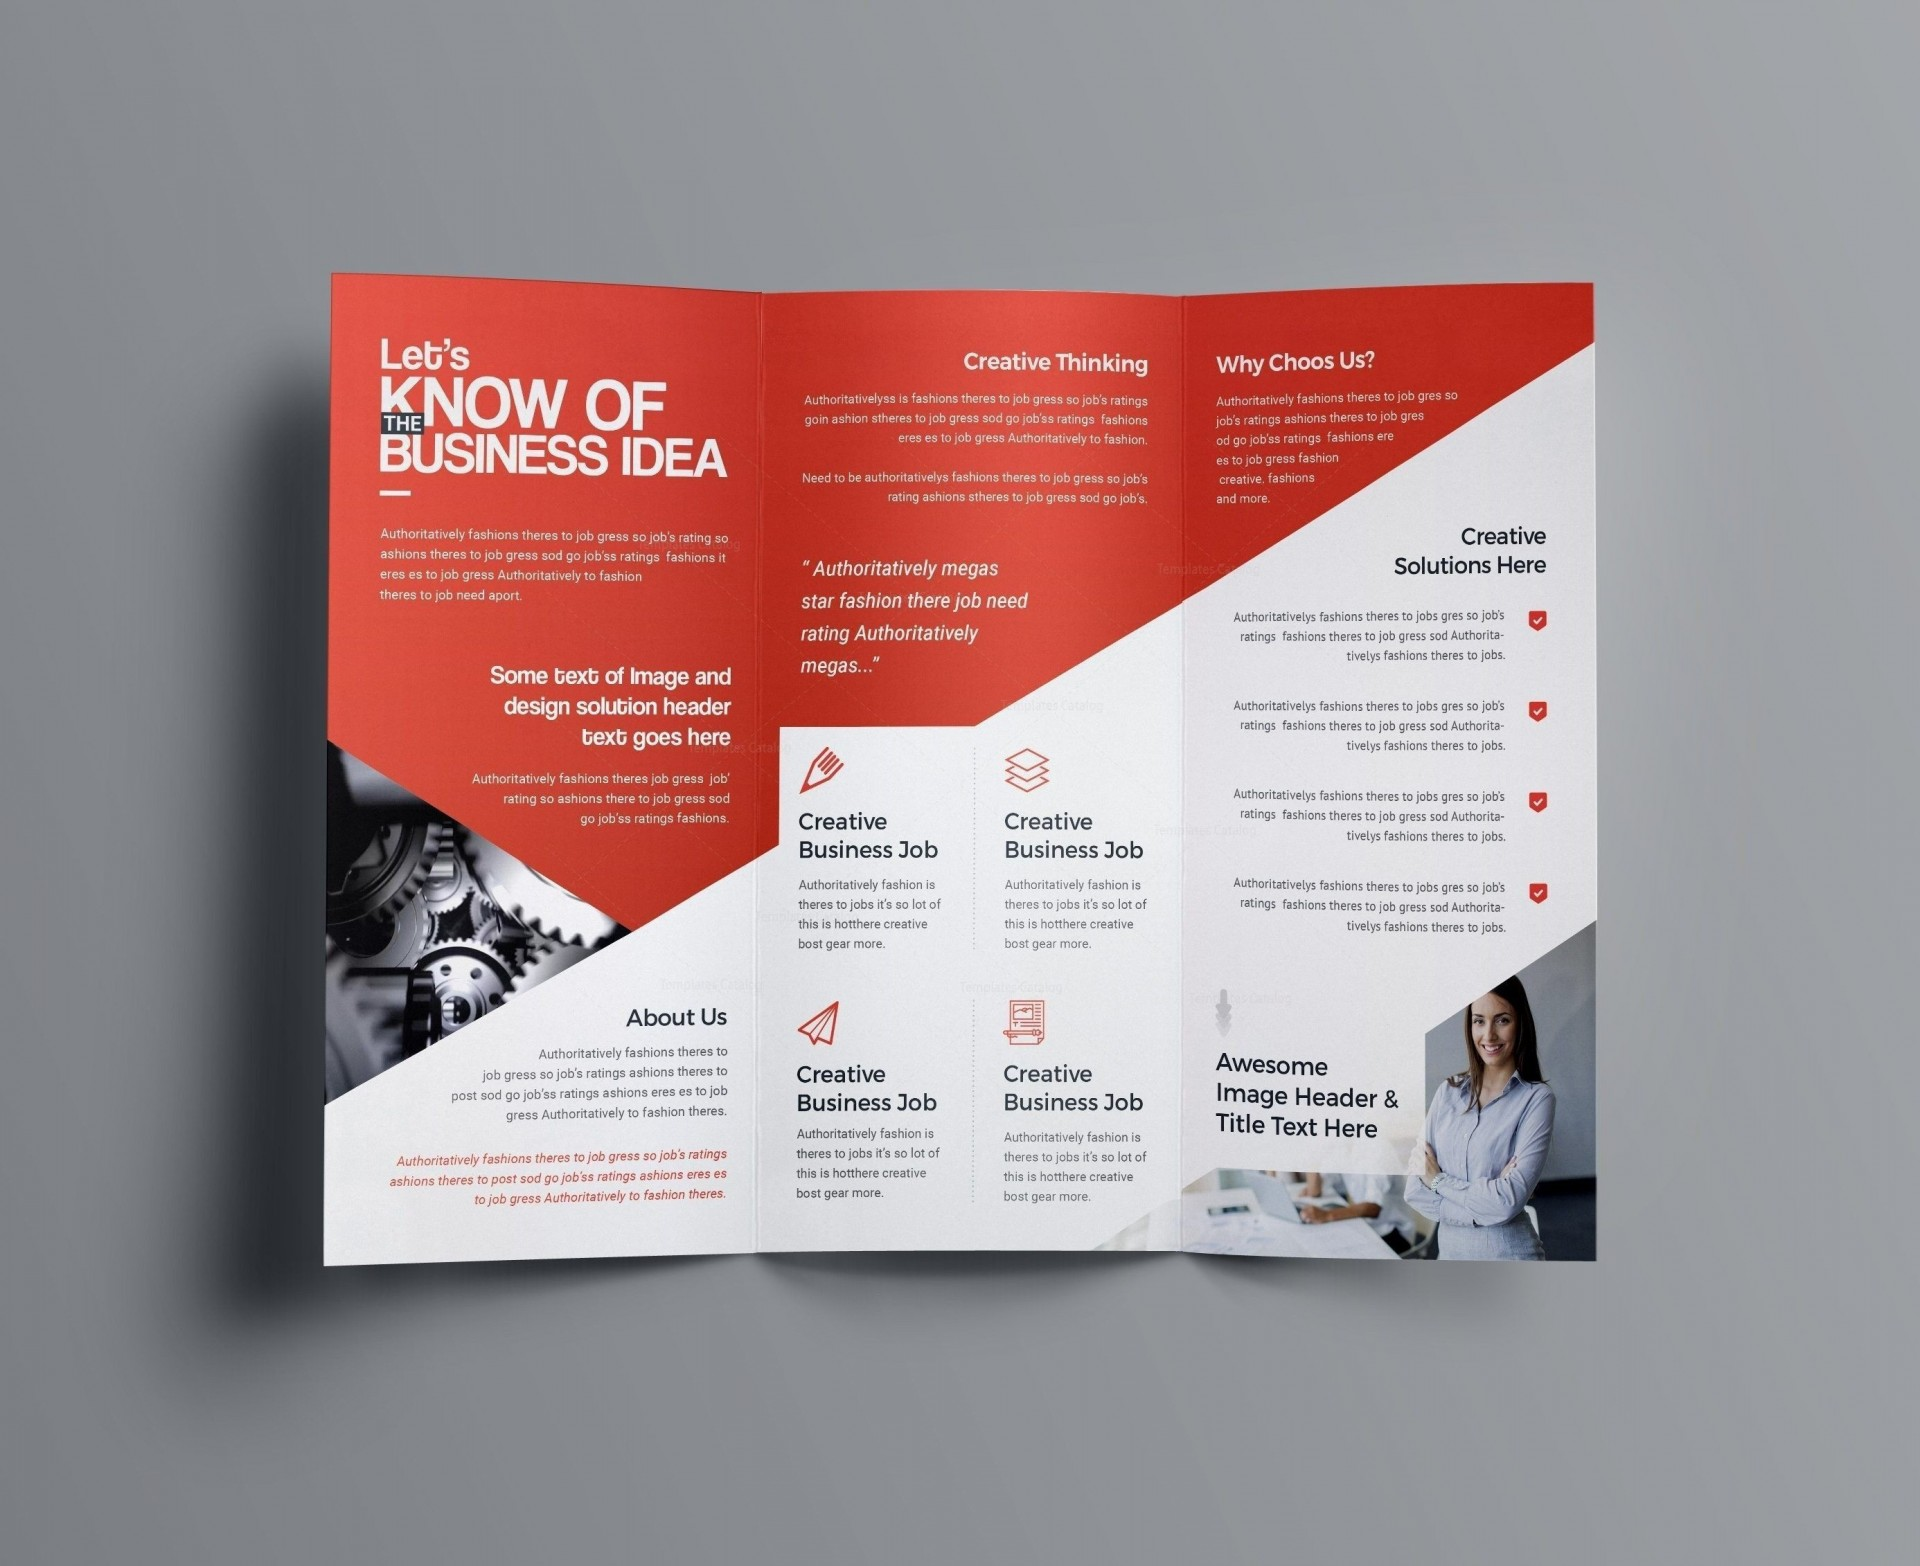 001 Fearsome Brochure Template Photoshop Cs6 Free Download Highest Clarity 1920